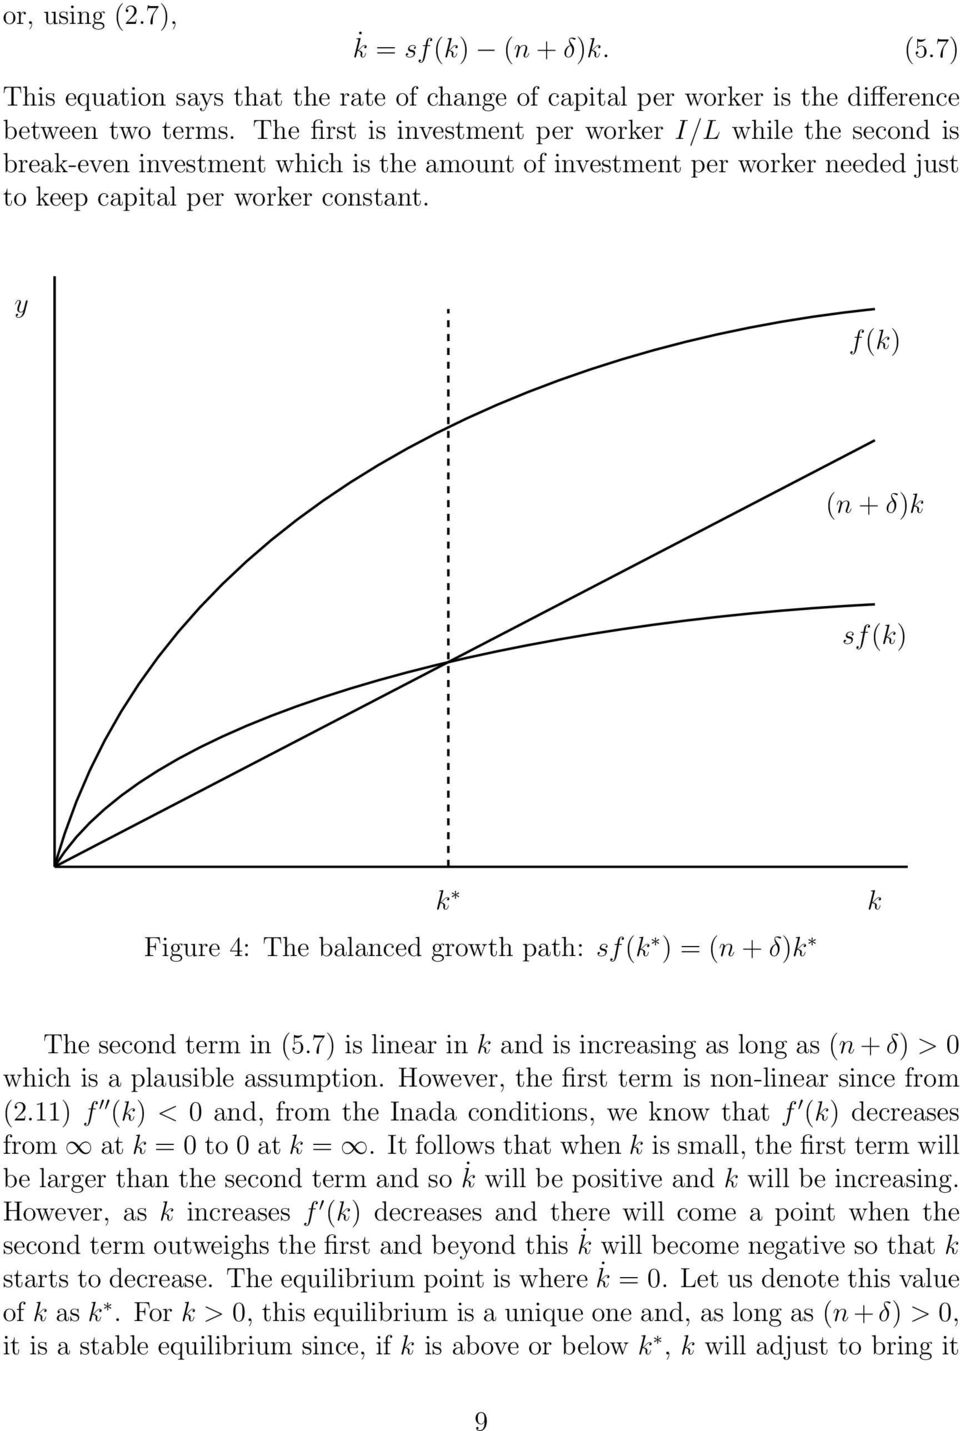 y f(k) (n + δ)k sf(k) k Figure 4: The balanced growth path: sf(k ) = (n + δ)k k The second term in (5.7) is linear in k and is increasing as long as (n + δ) > 0 which is a plausible assumption.